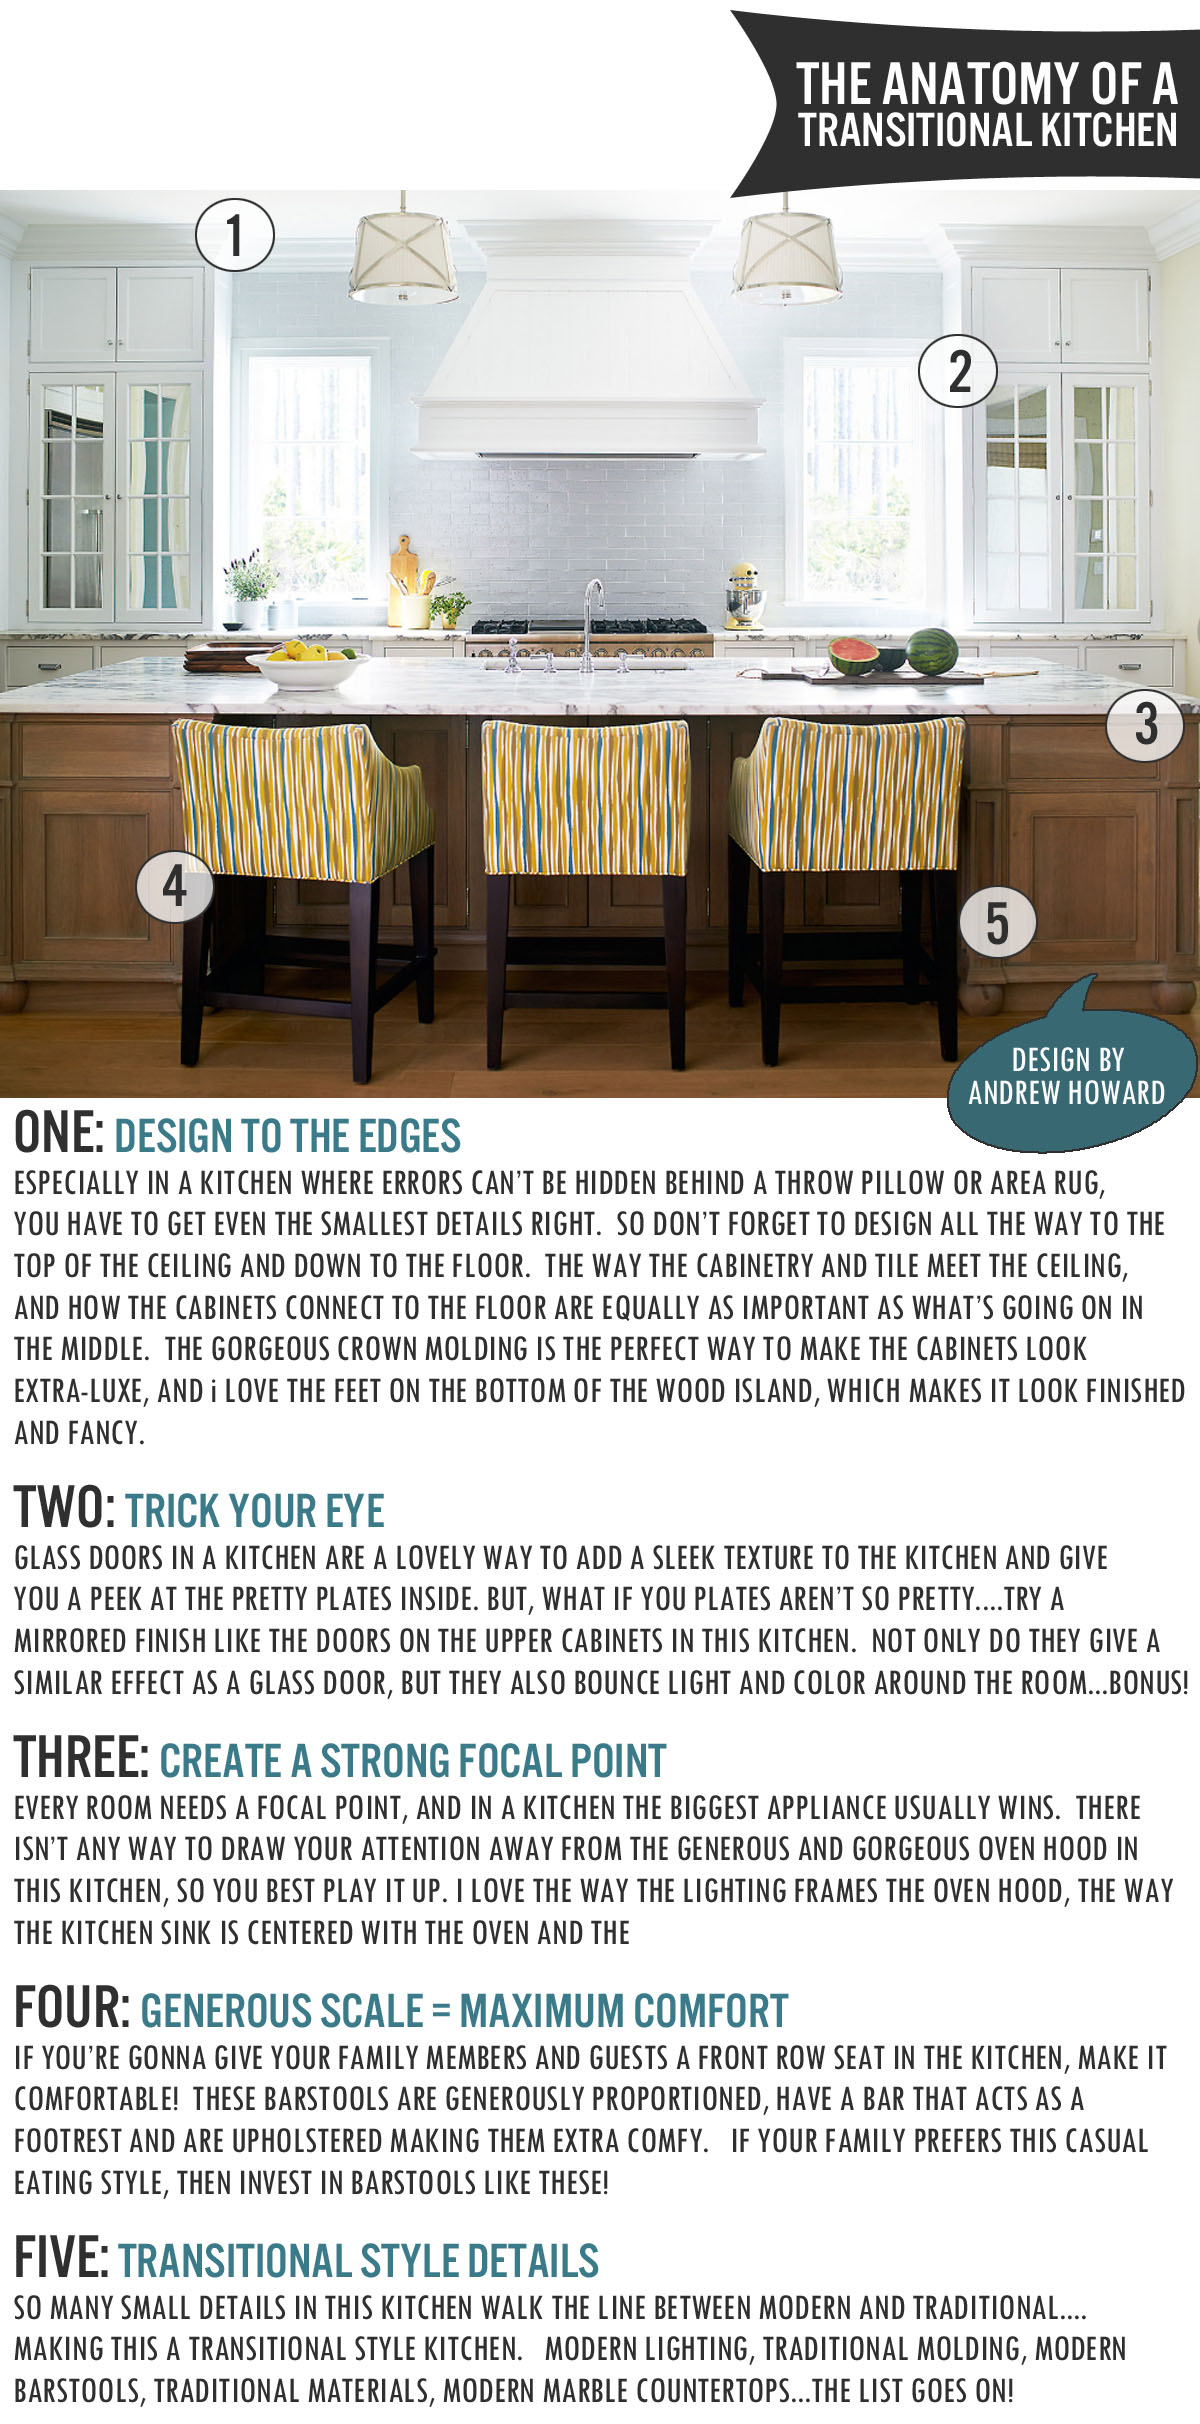 Medium image of the anatomy of a transitional kitchen   www theanatomyofdesign com